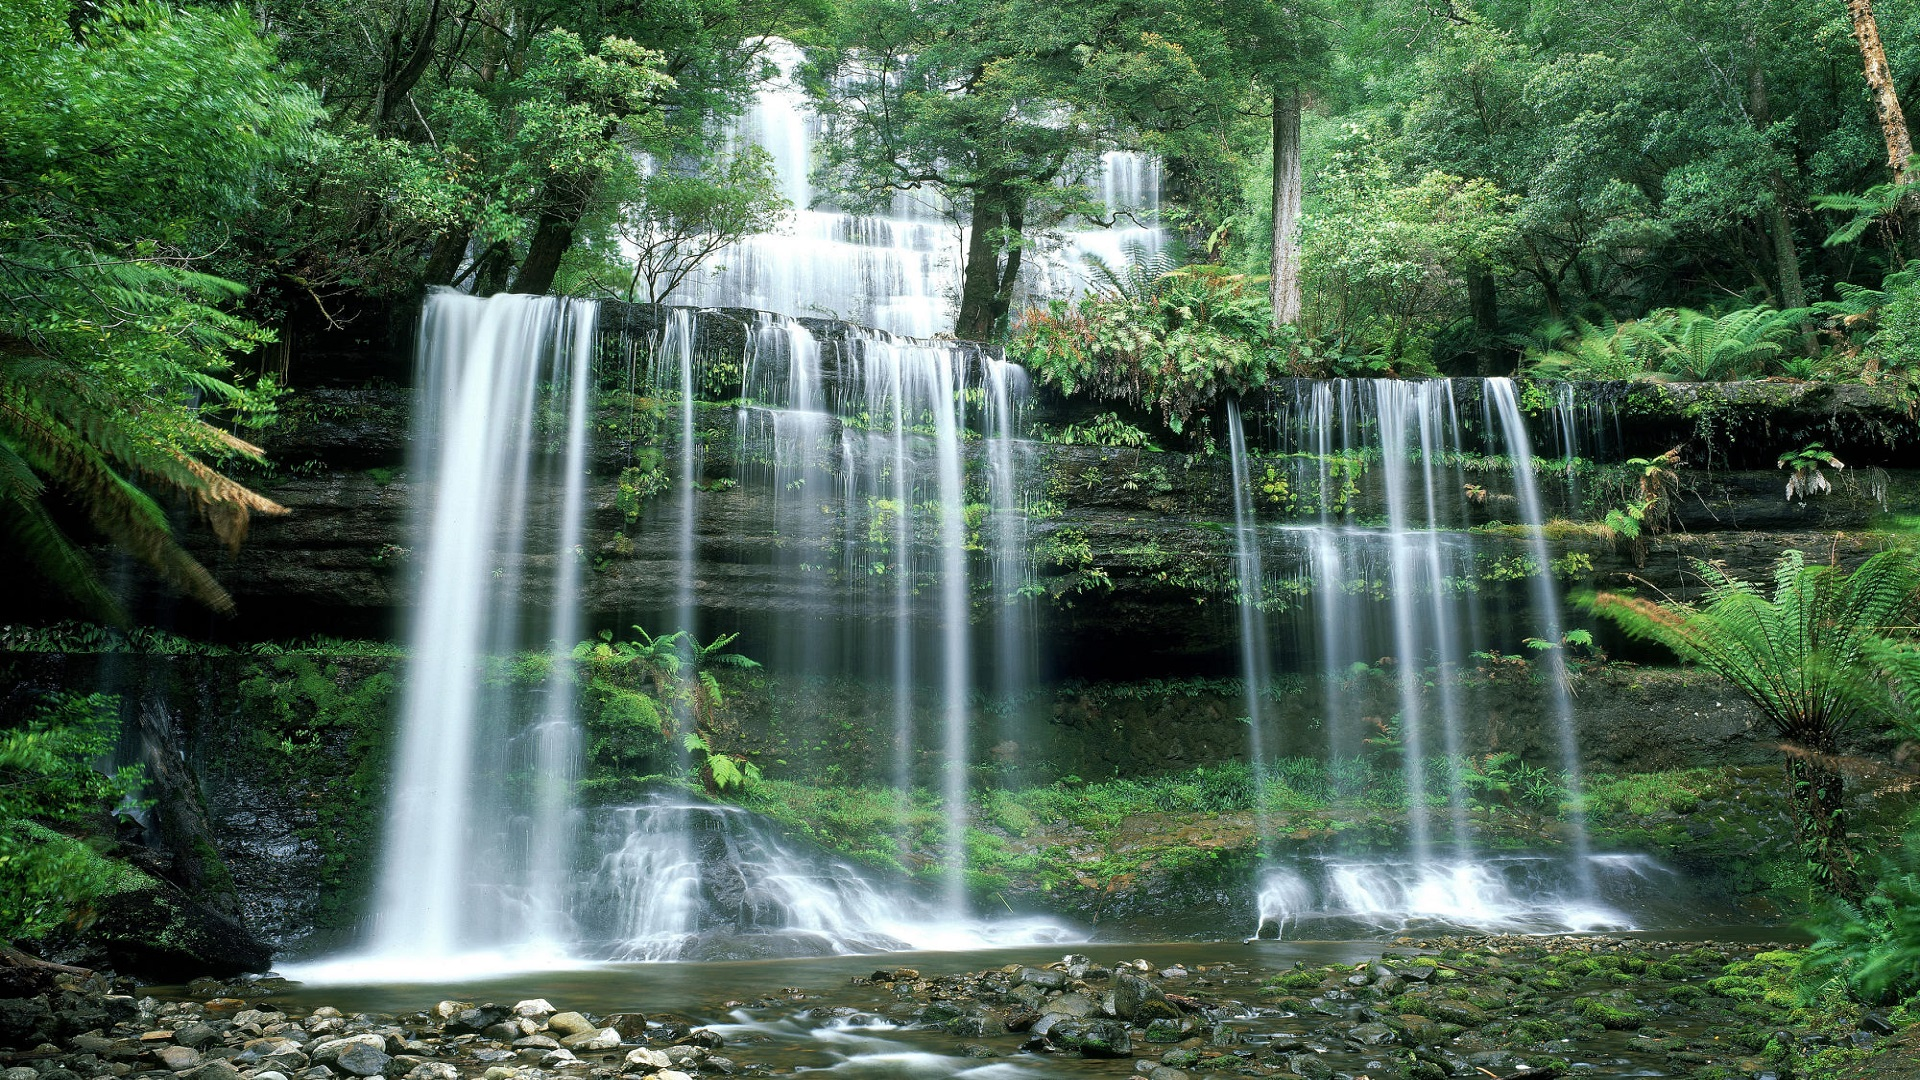 most-beautiful-waterfalls-wallpapers-hd-free - hd wallpaper